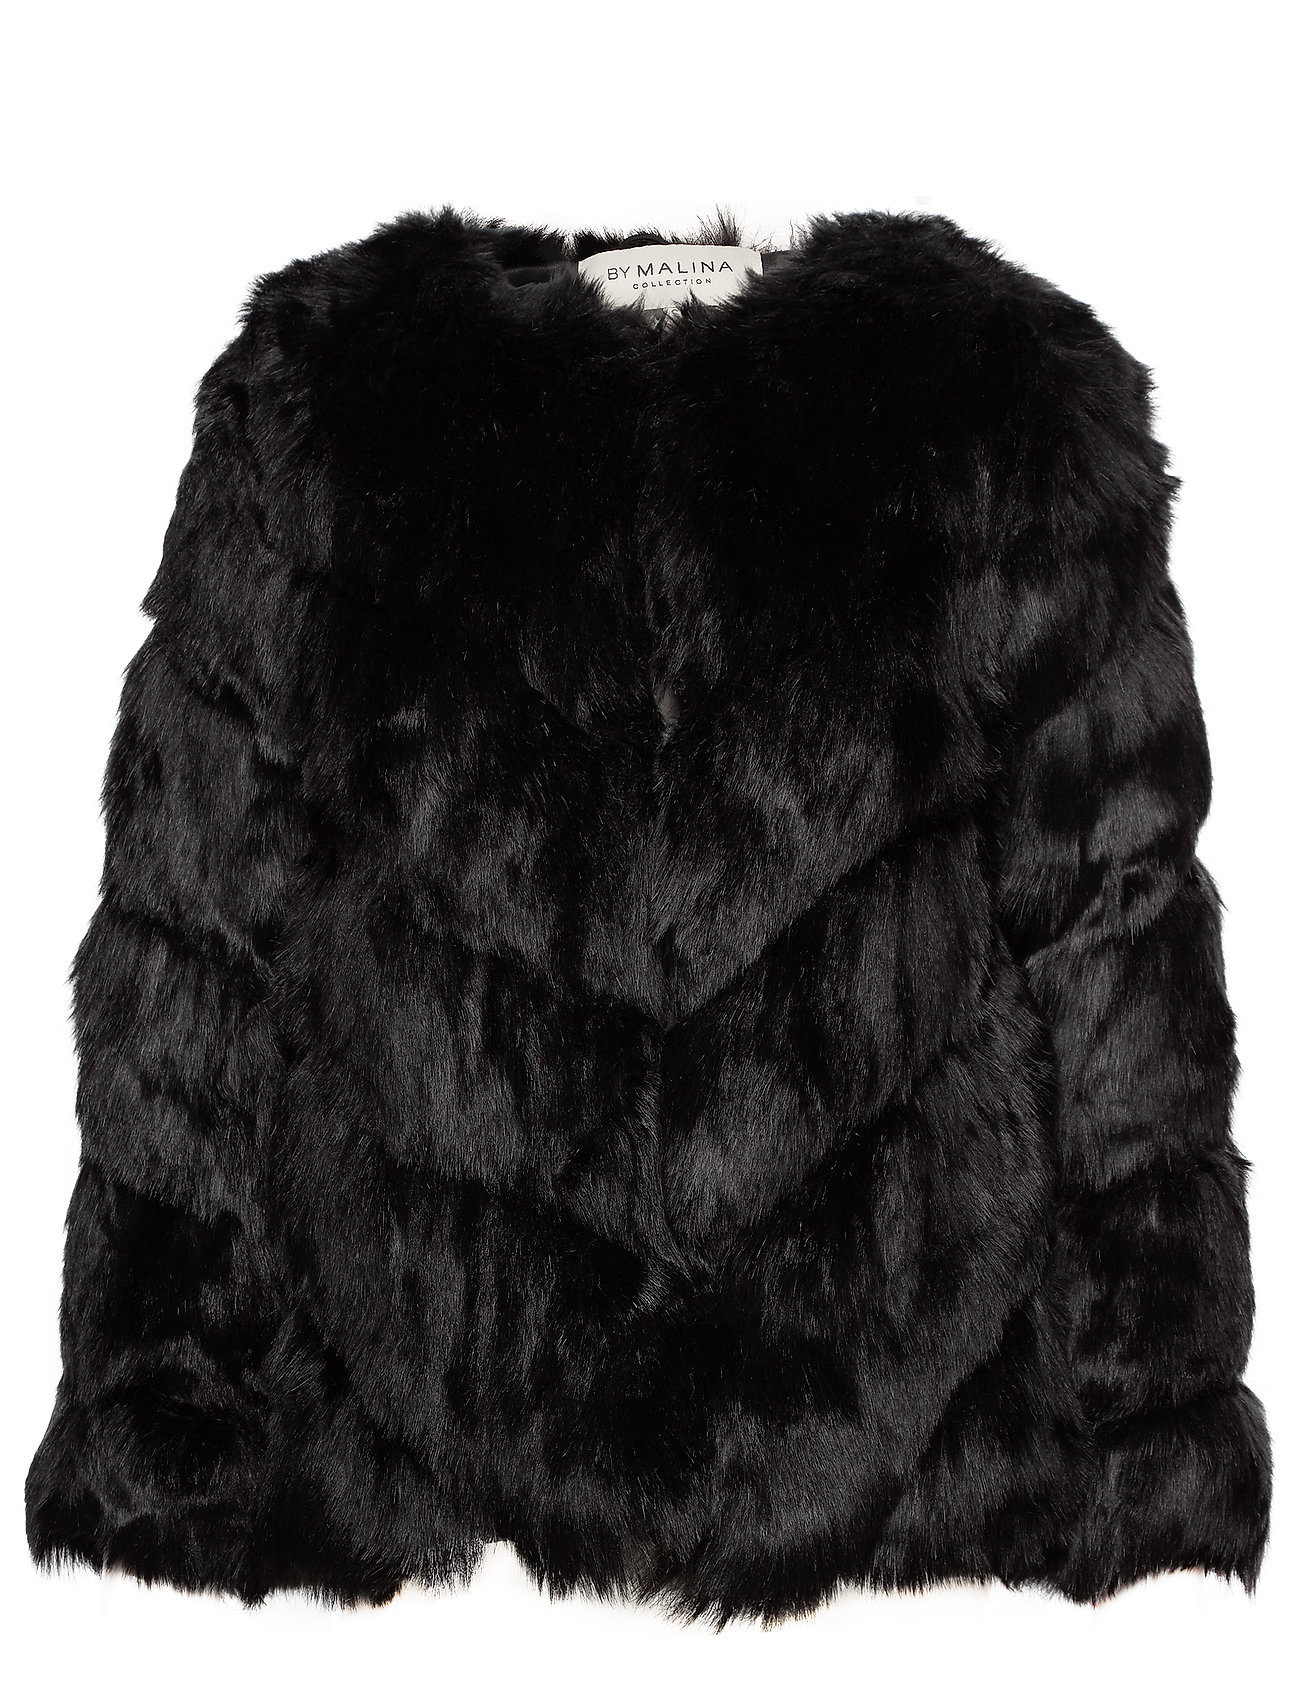 By Malina Oria faux fur jacket - BLACK